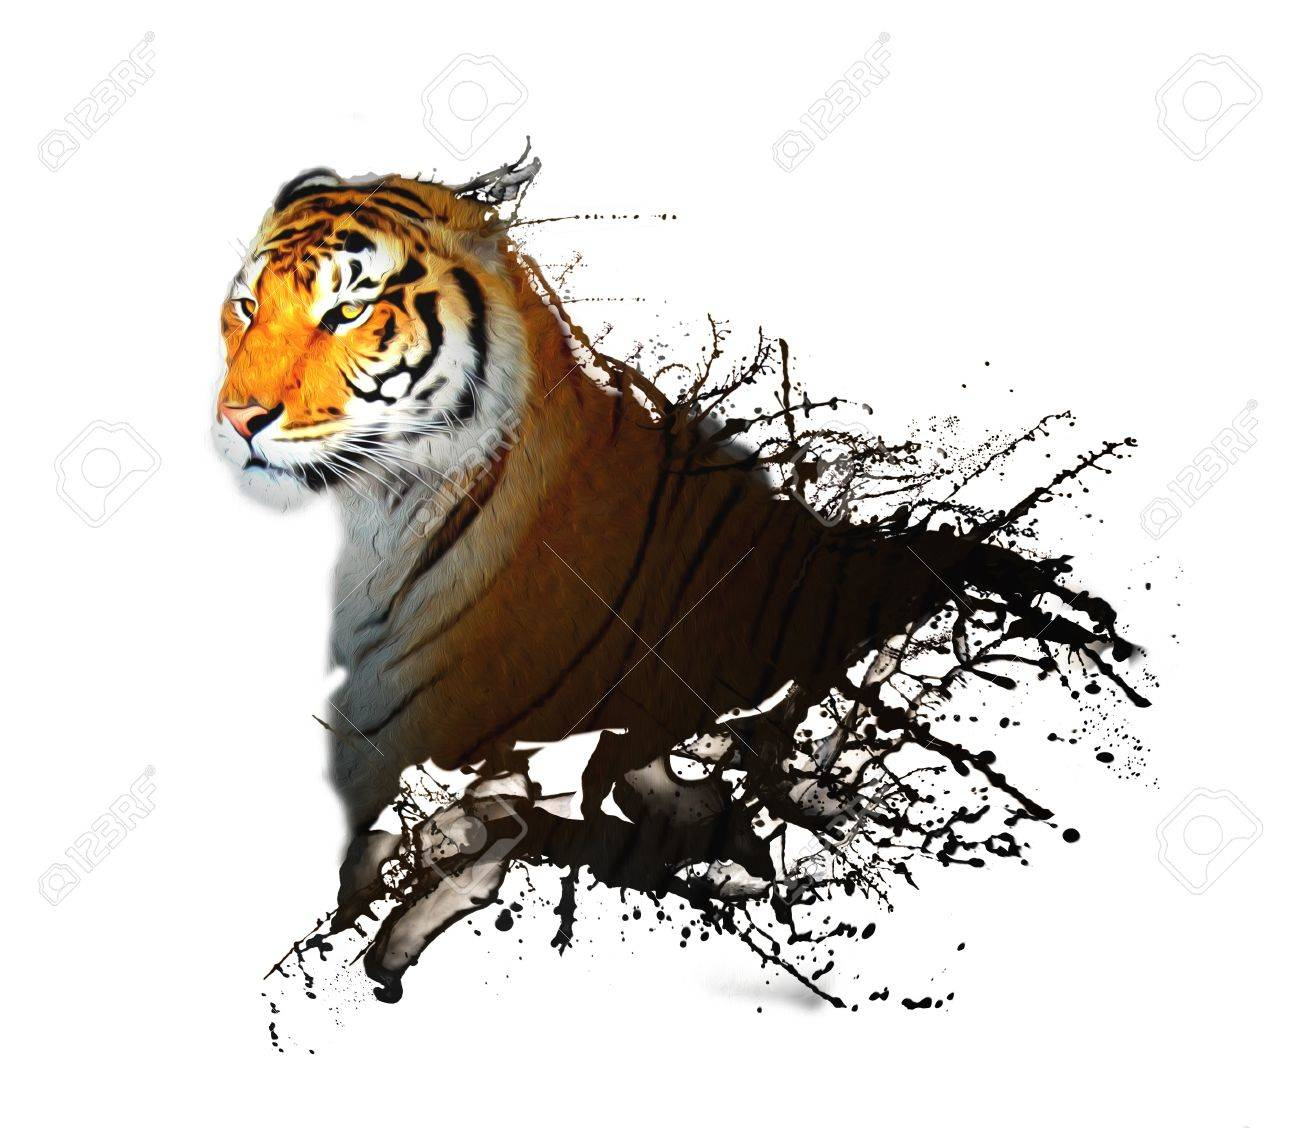 Stock photo tiger and sketches with ink effect